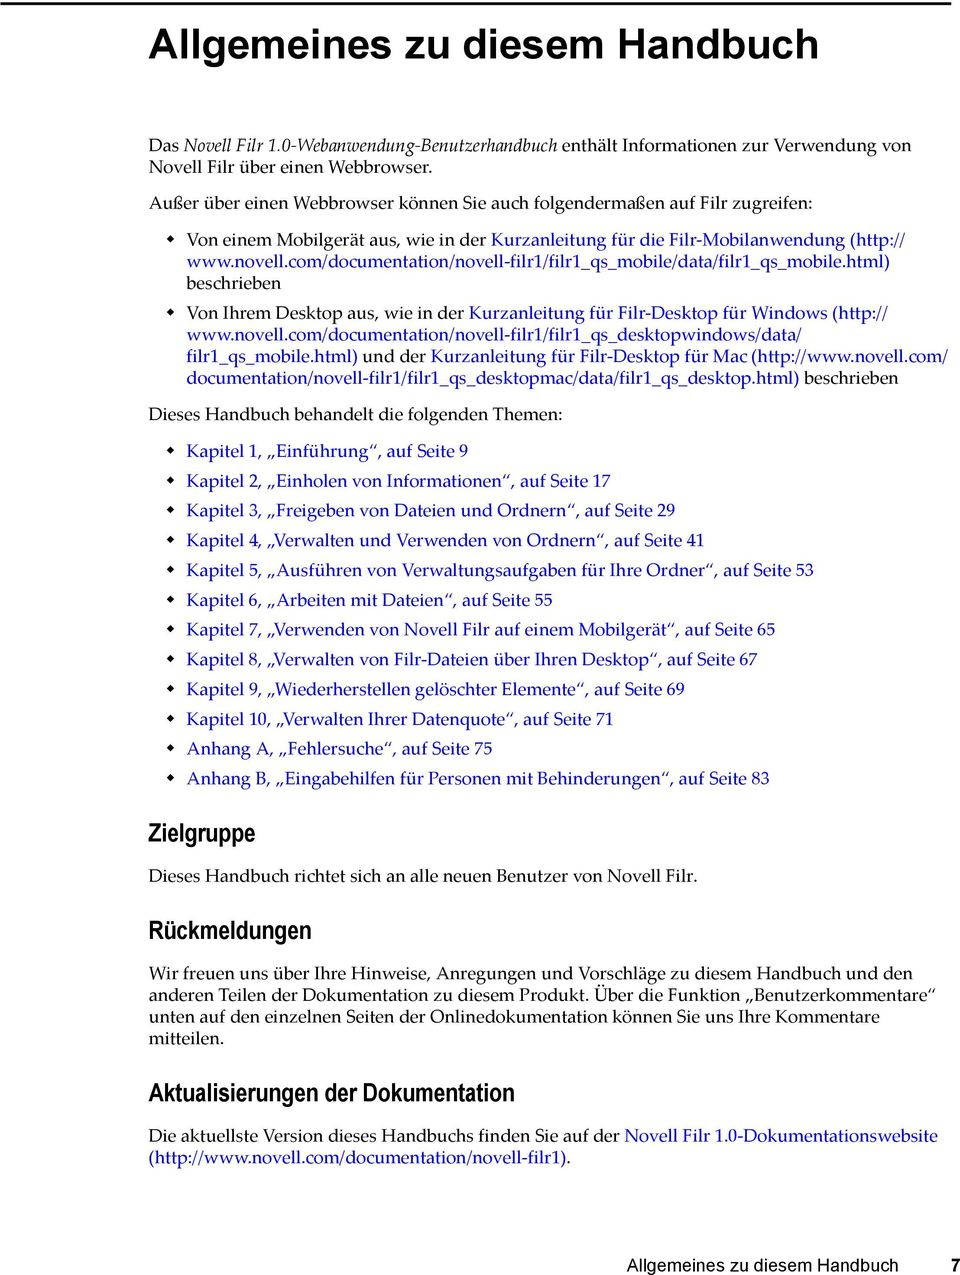 com/documentation/novell-filr1/filr1_qs_mobile/data/filr1_qs_mobile.html) beschrieben Von Ihrem Desktop aus, wie in der Kurzanleitung für Filr-Desktop für Windows (http:// www.novell.com/documentation/novell-filr1/filr1_qs_desktopwindows/data/ filr1_qs_mobile.